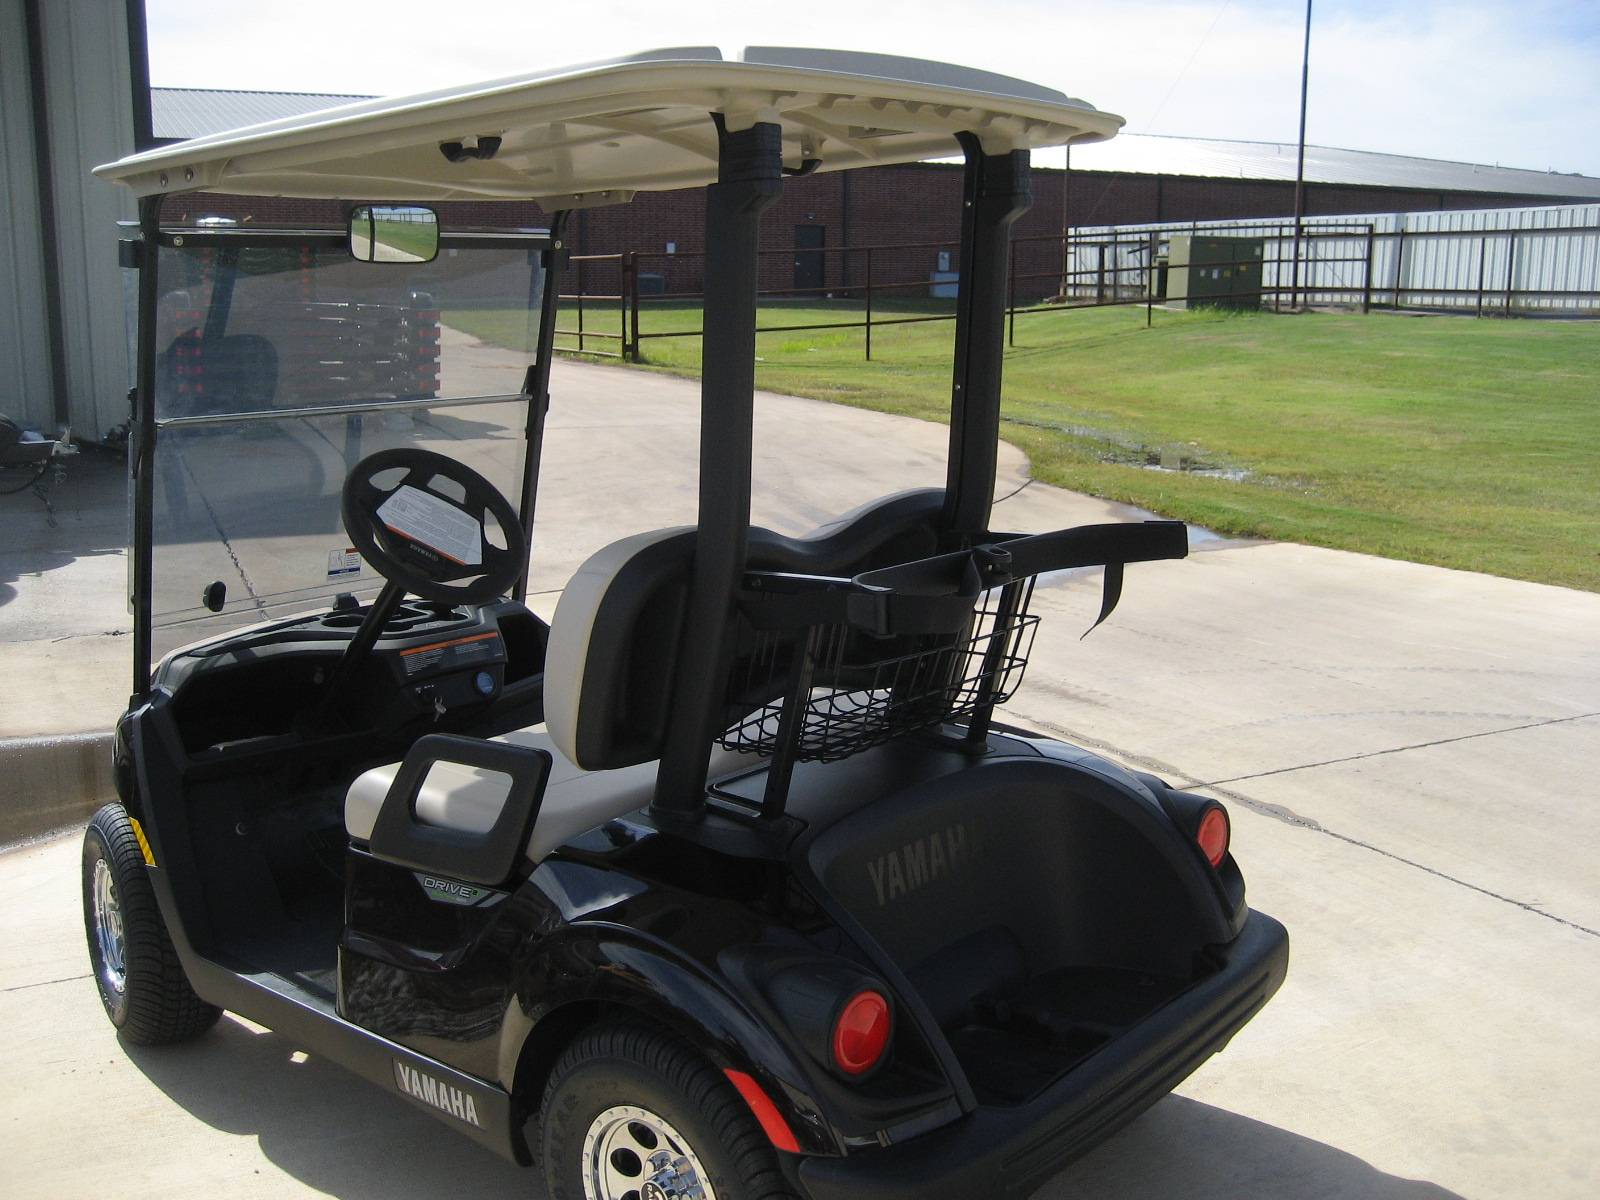 yamaha golf carts oklahoma wiring diagram for motorcycle blinkers new 2019 the drive2 fleet gas efi in